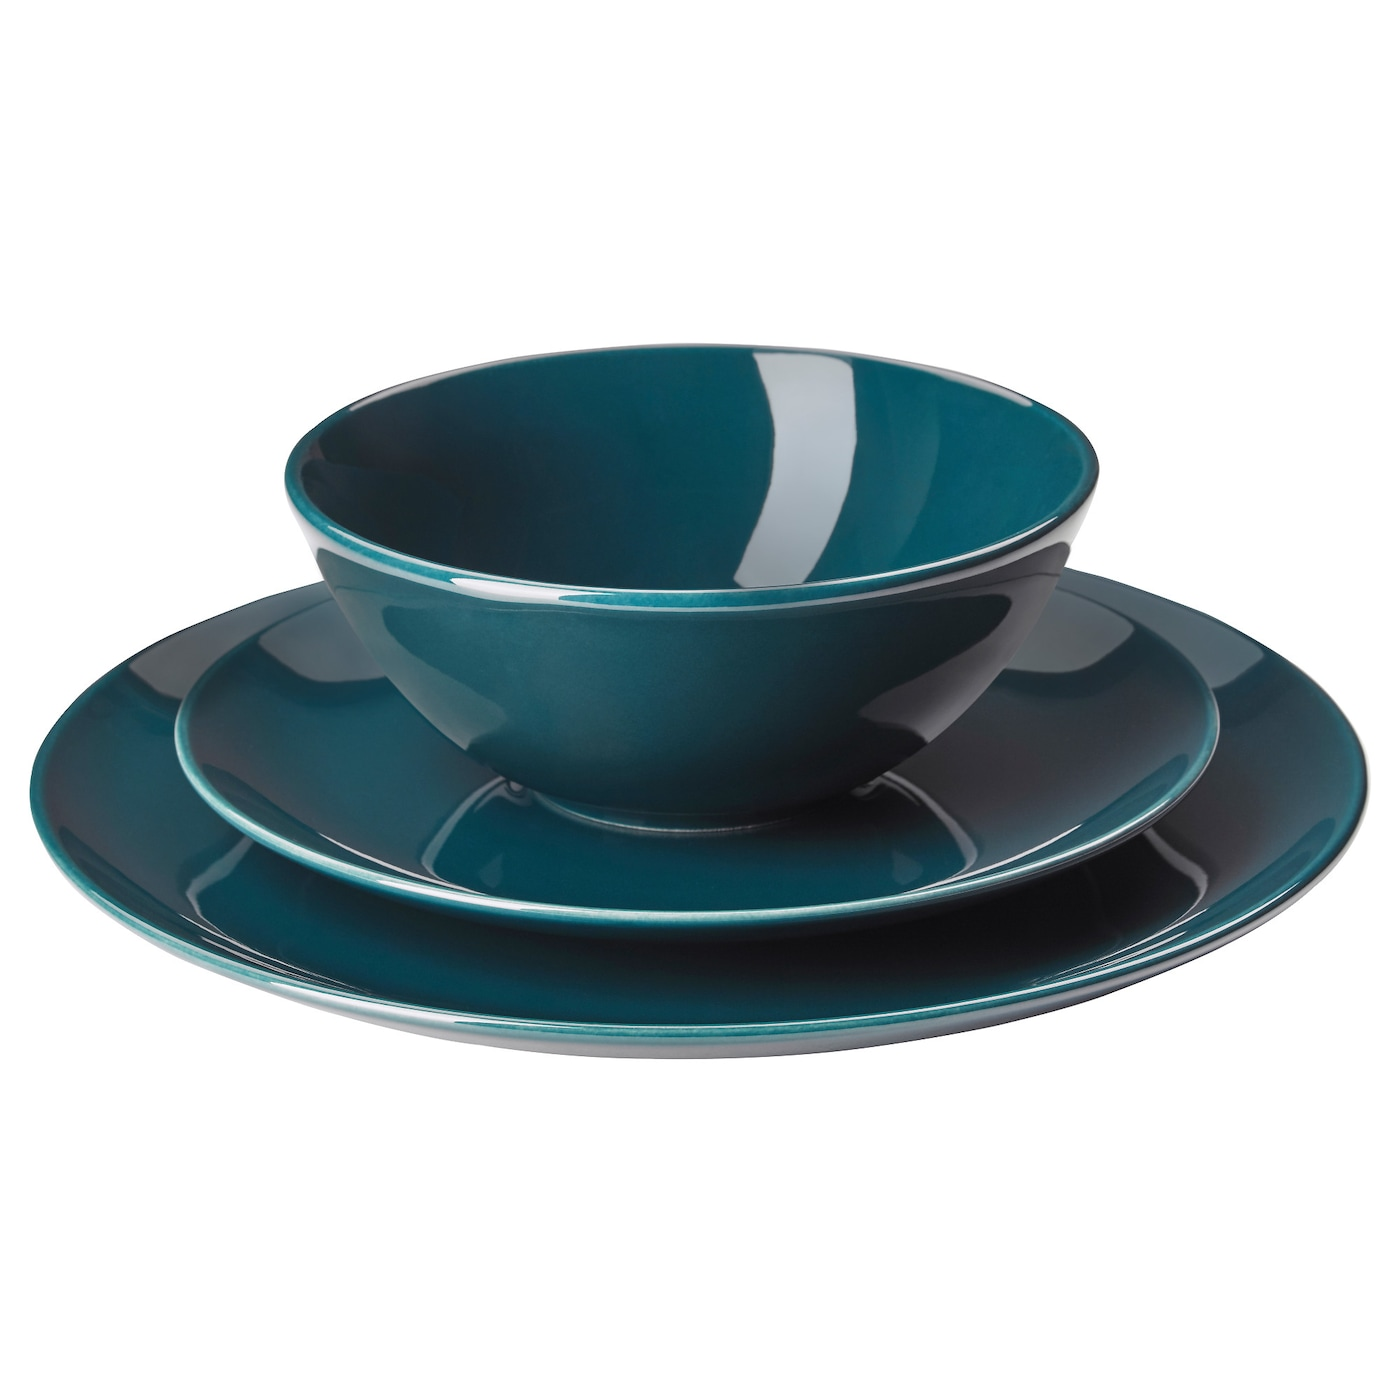 Deep colors asian style dinnerware